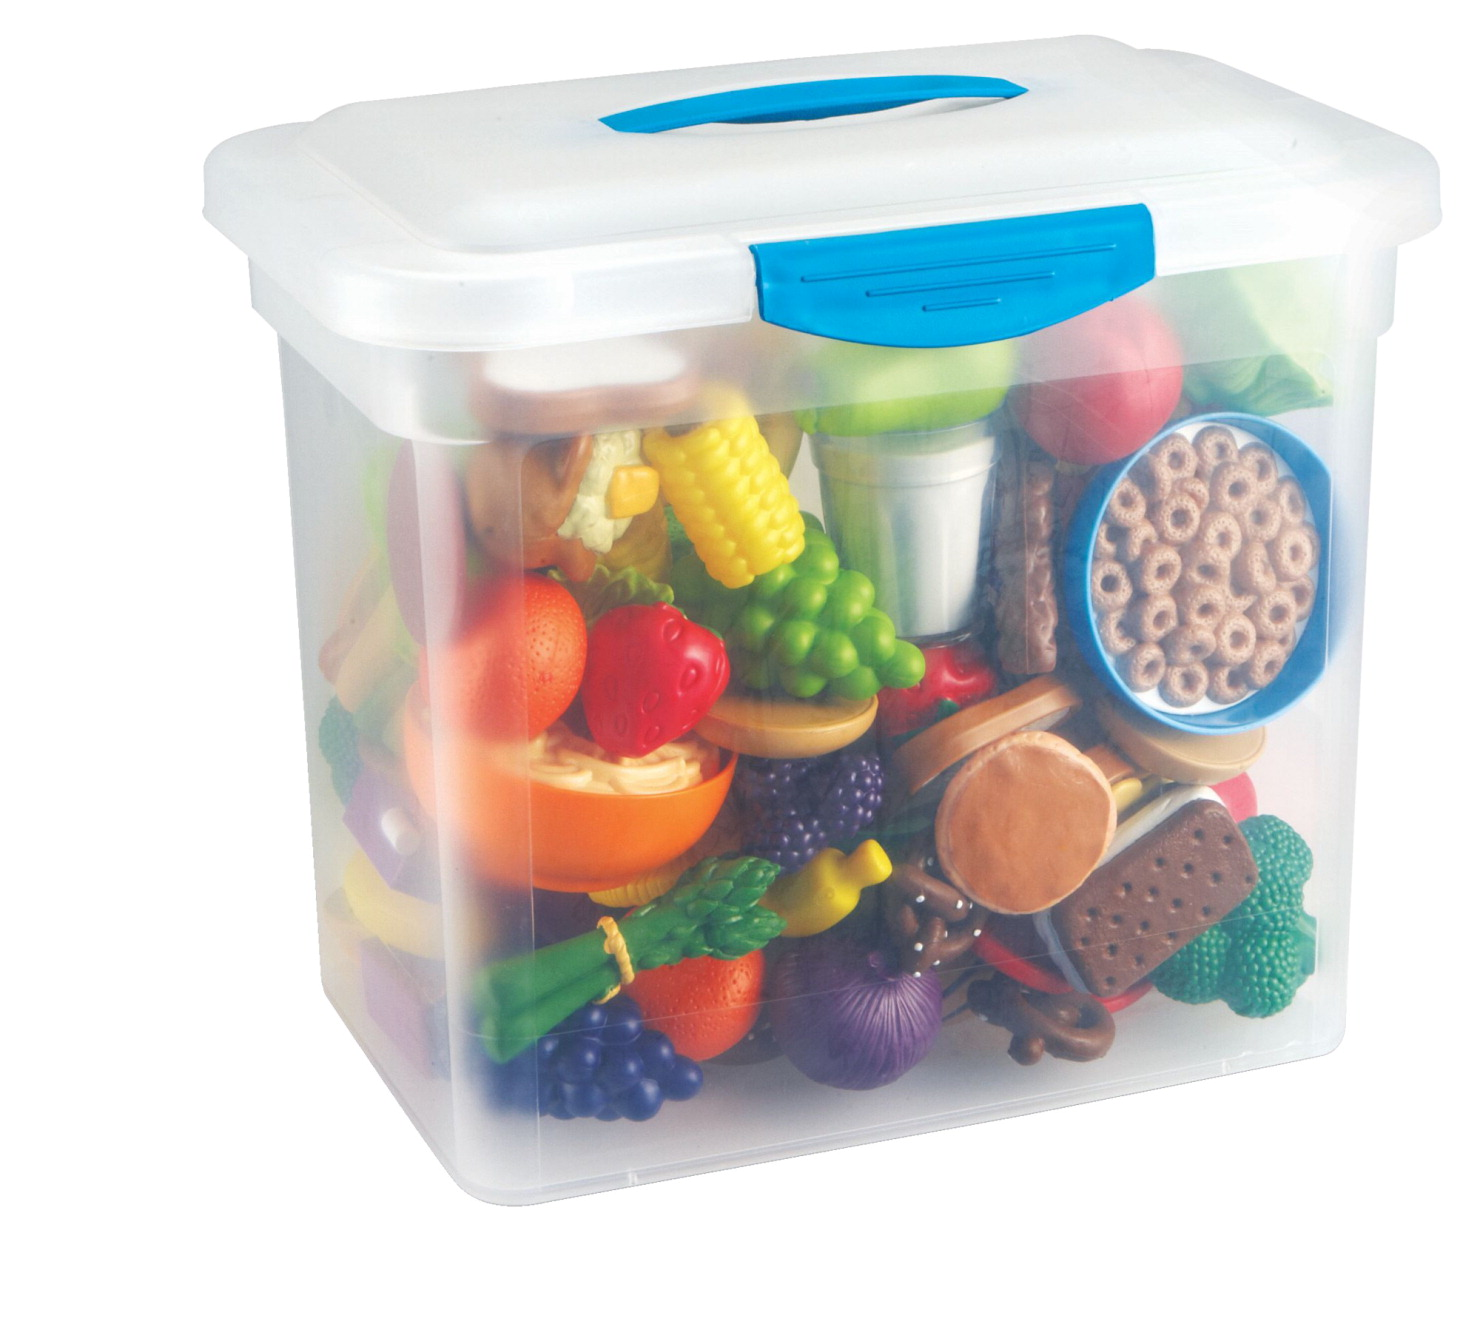 Play Food Set Toys : Learning resources new sprouts classroom play food set